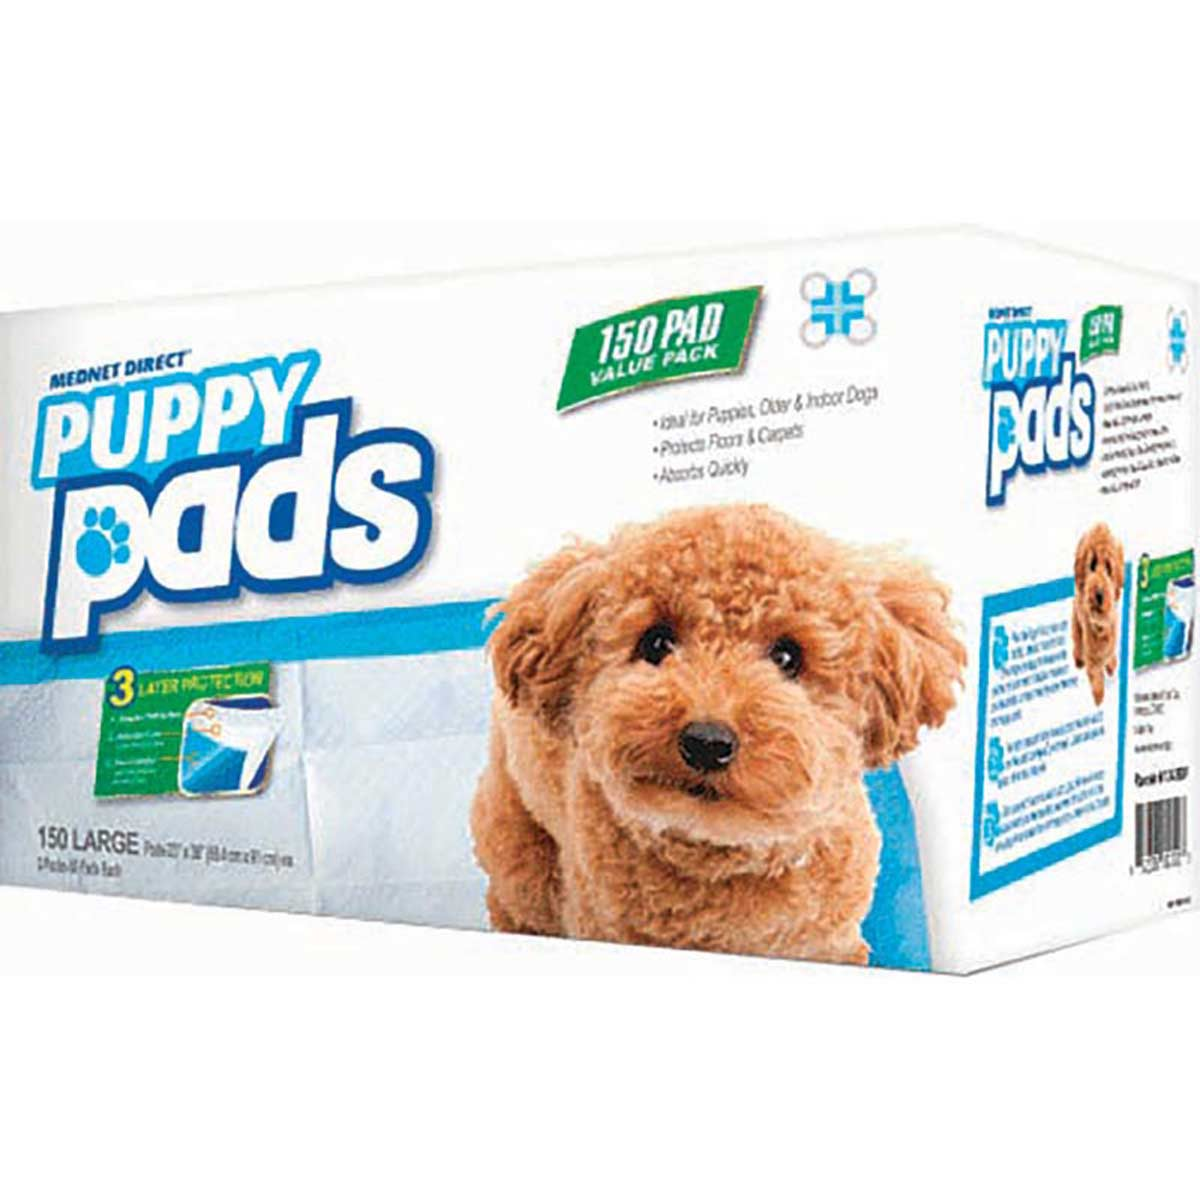 23 inches by 36 inches -150 Large Mednet Disposable Puppy Pads